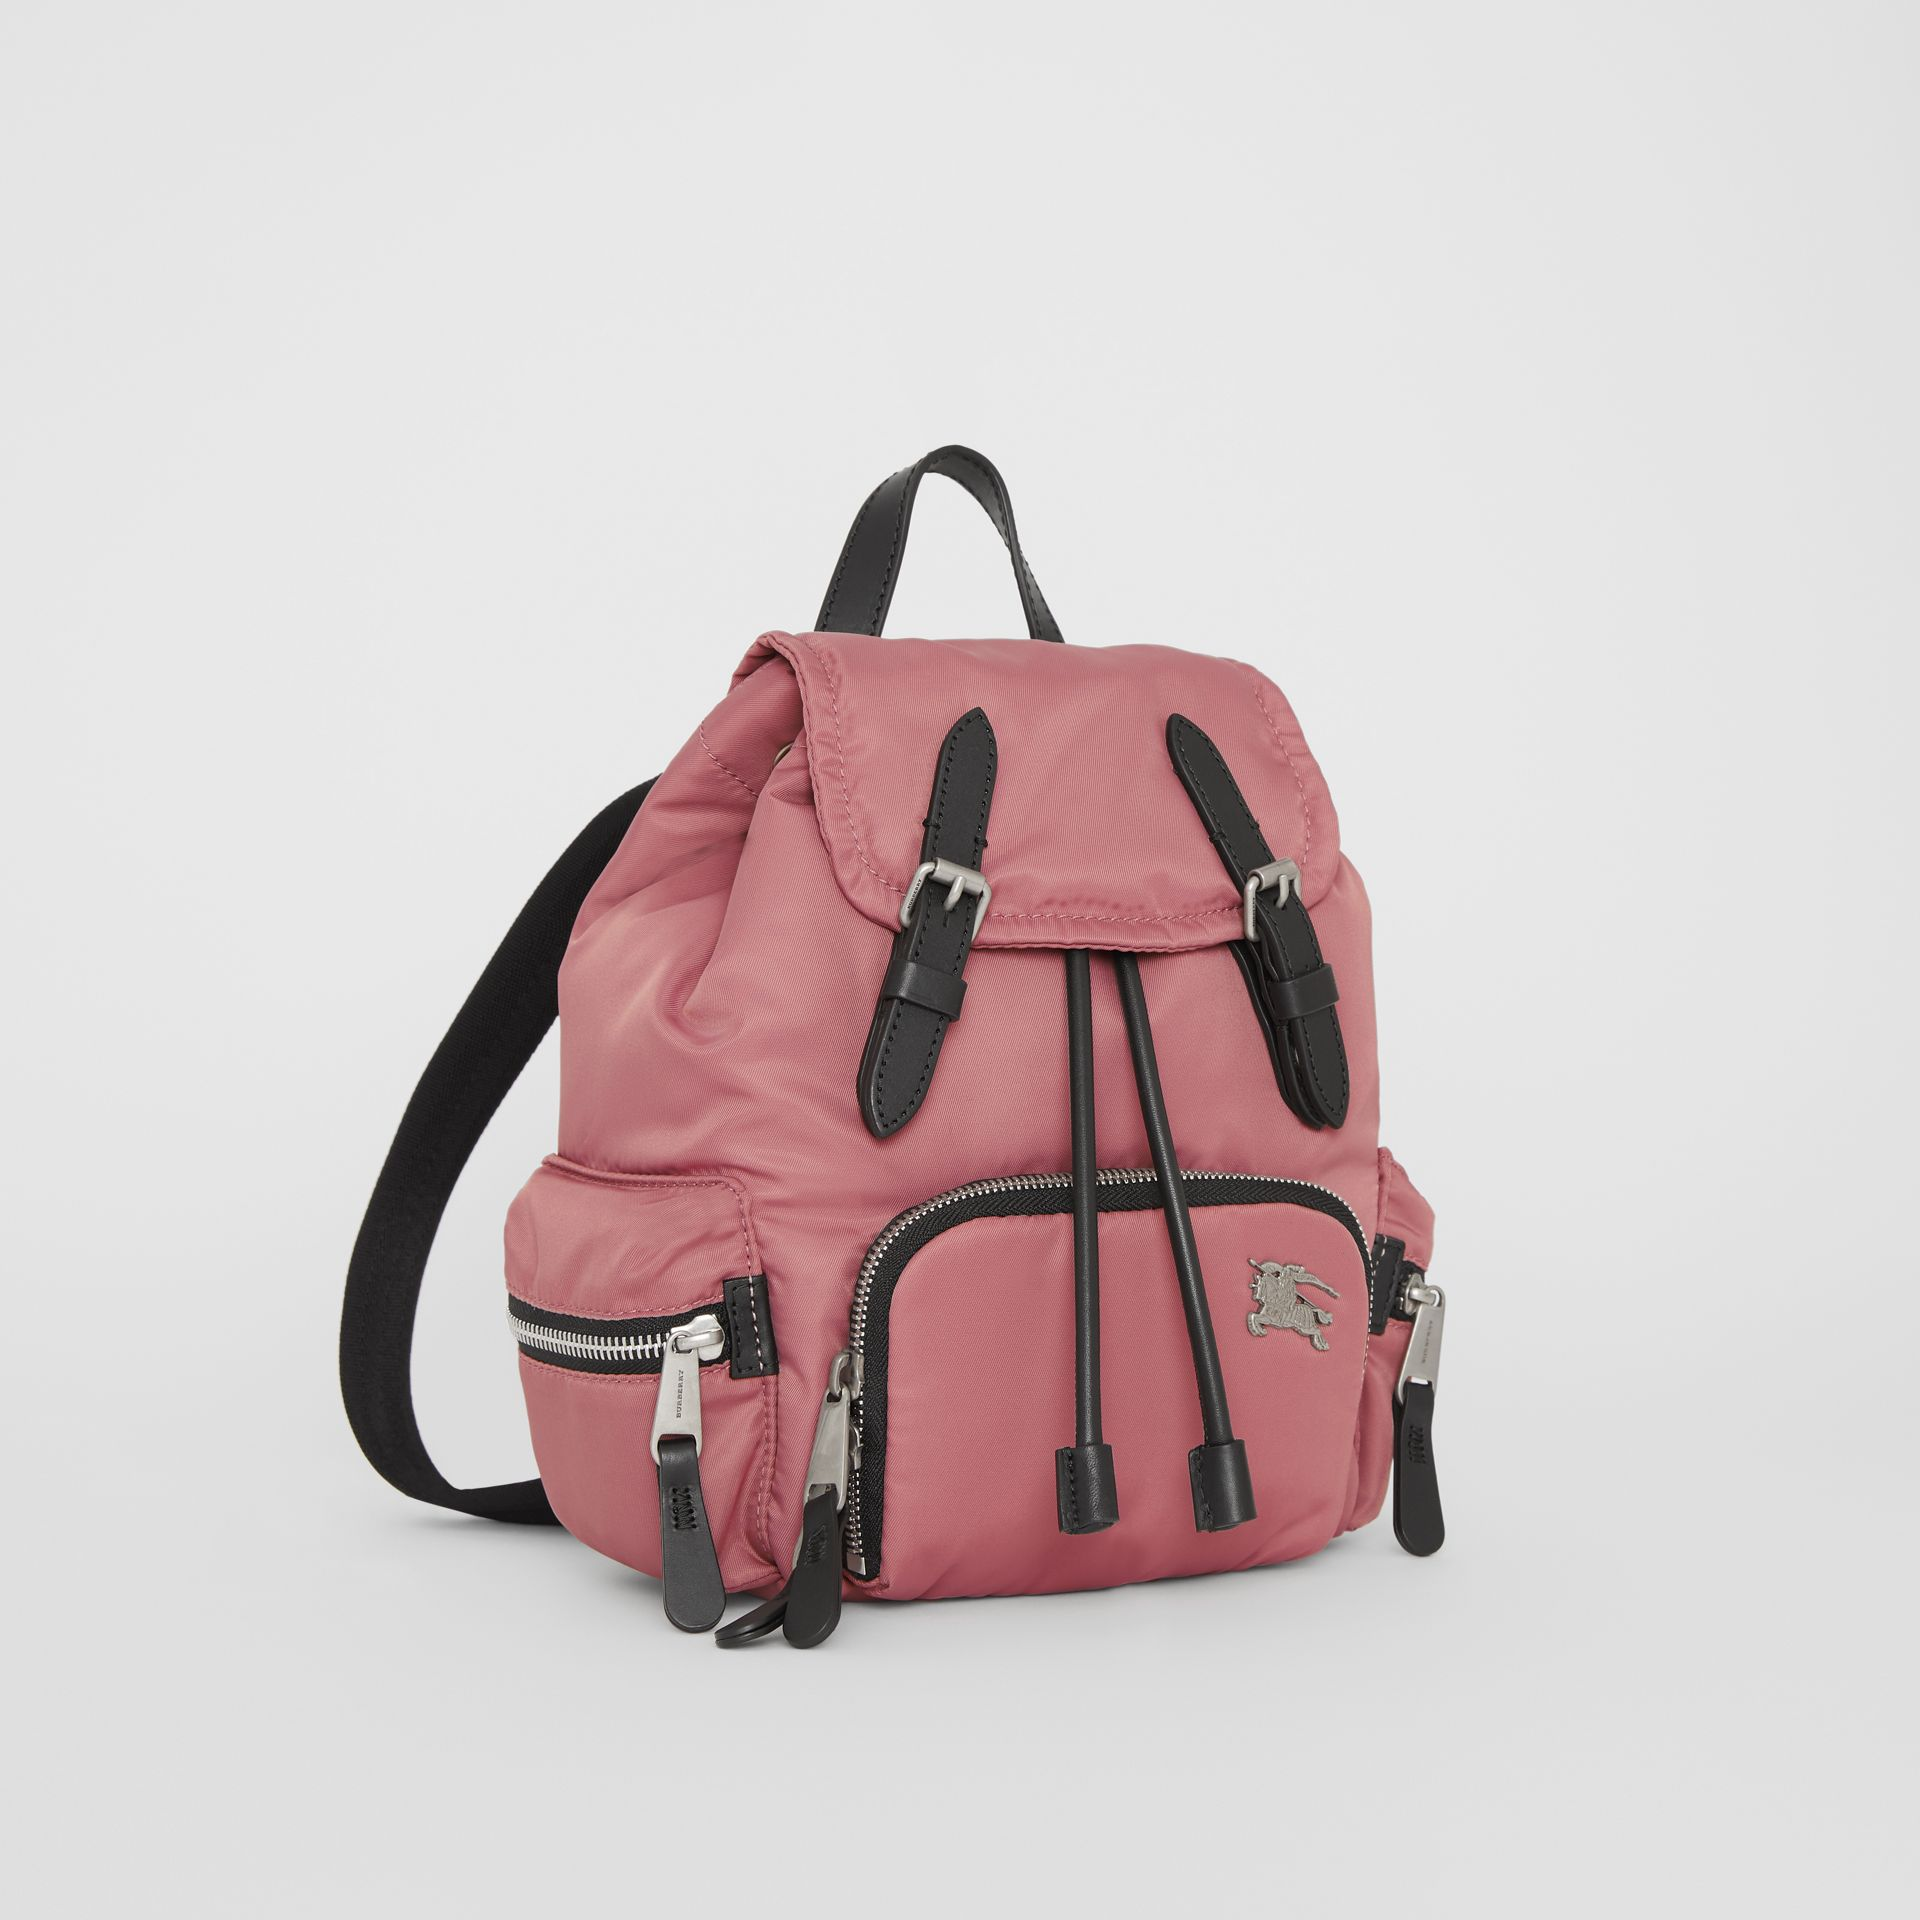 The Small Crossbody Rucksack in Puffer Nylon in Mauve Pink - Women | Burberry - gallery image 7